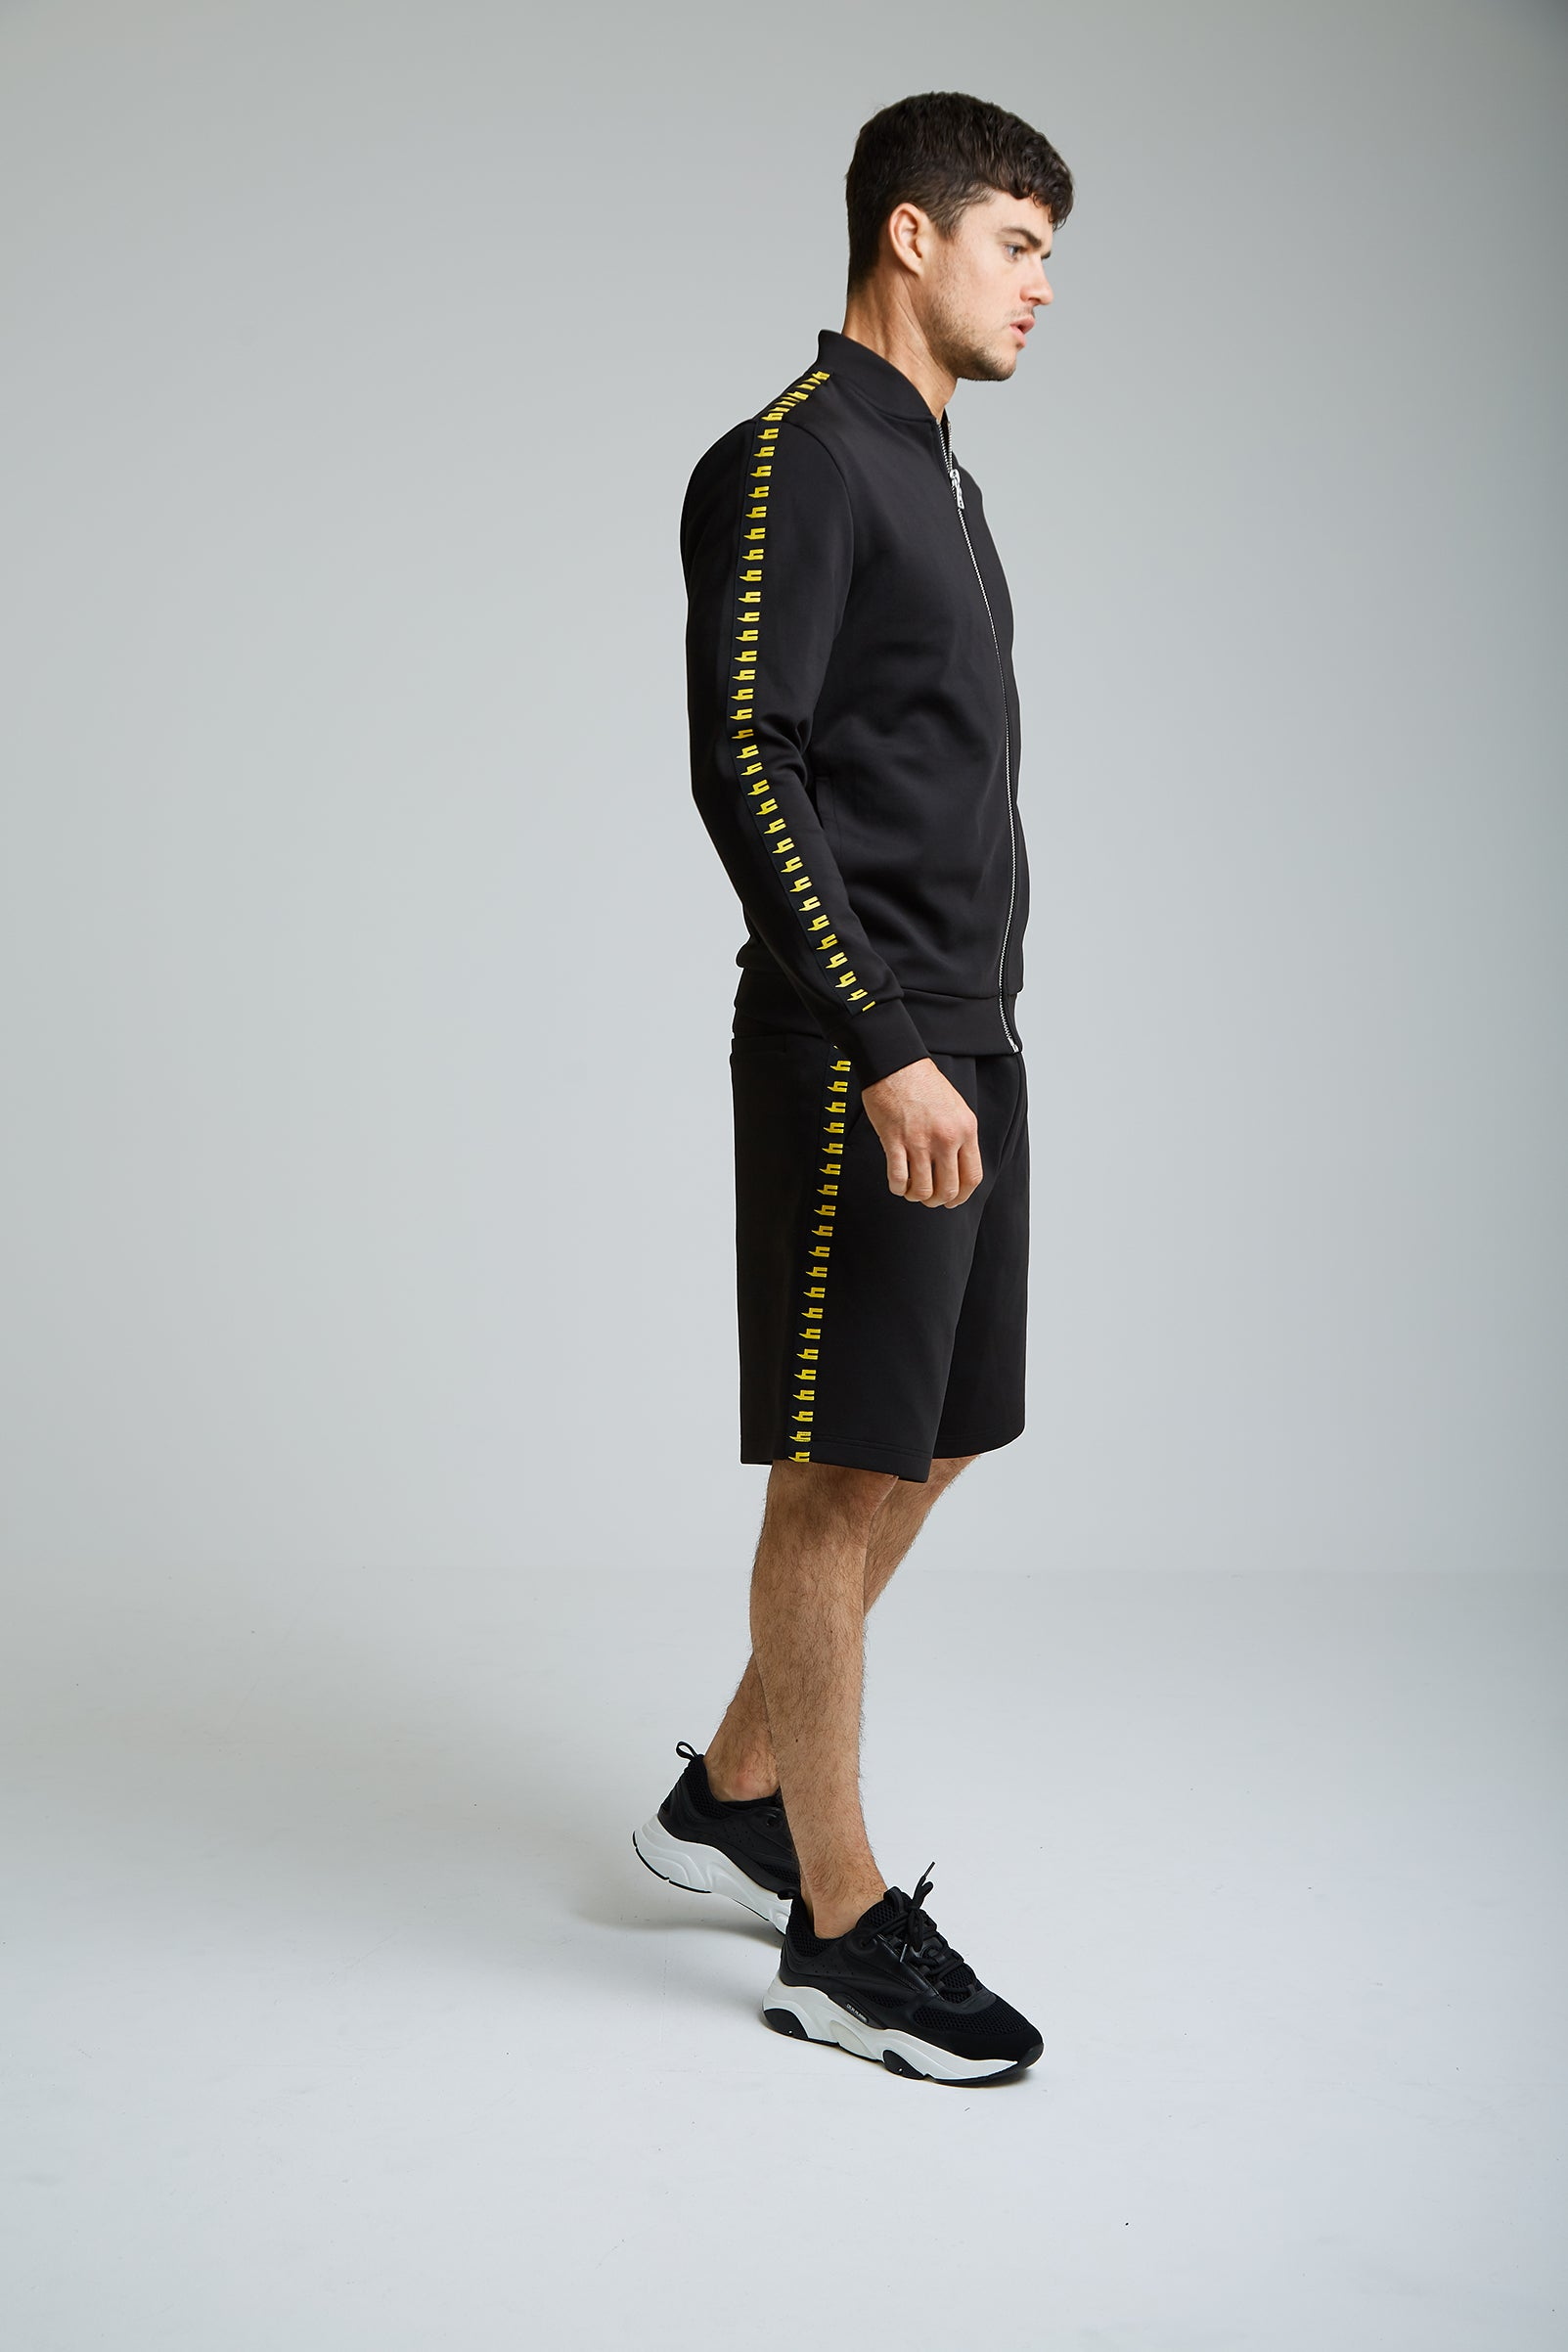 YELIR WORLD SIDE STRIPE SHORTS BLACK/YELLOW